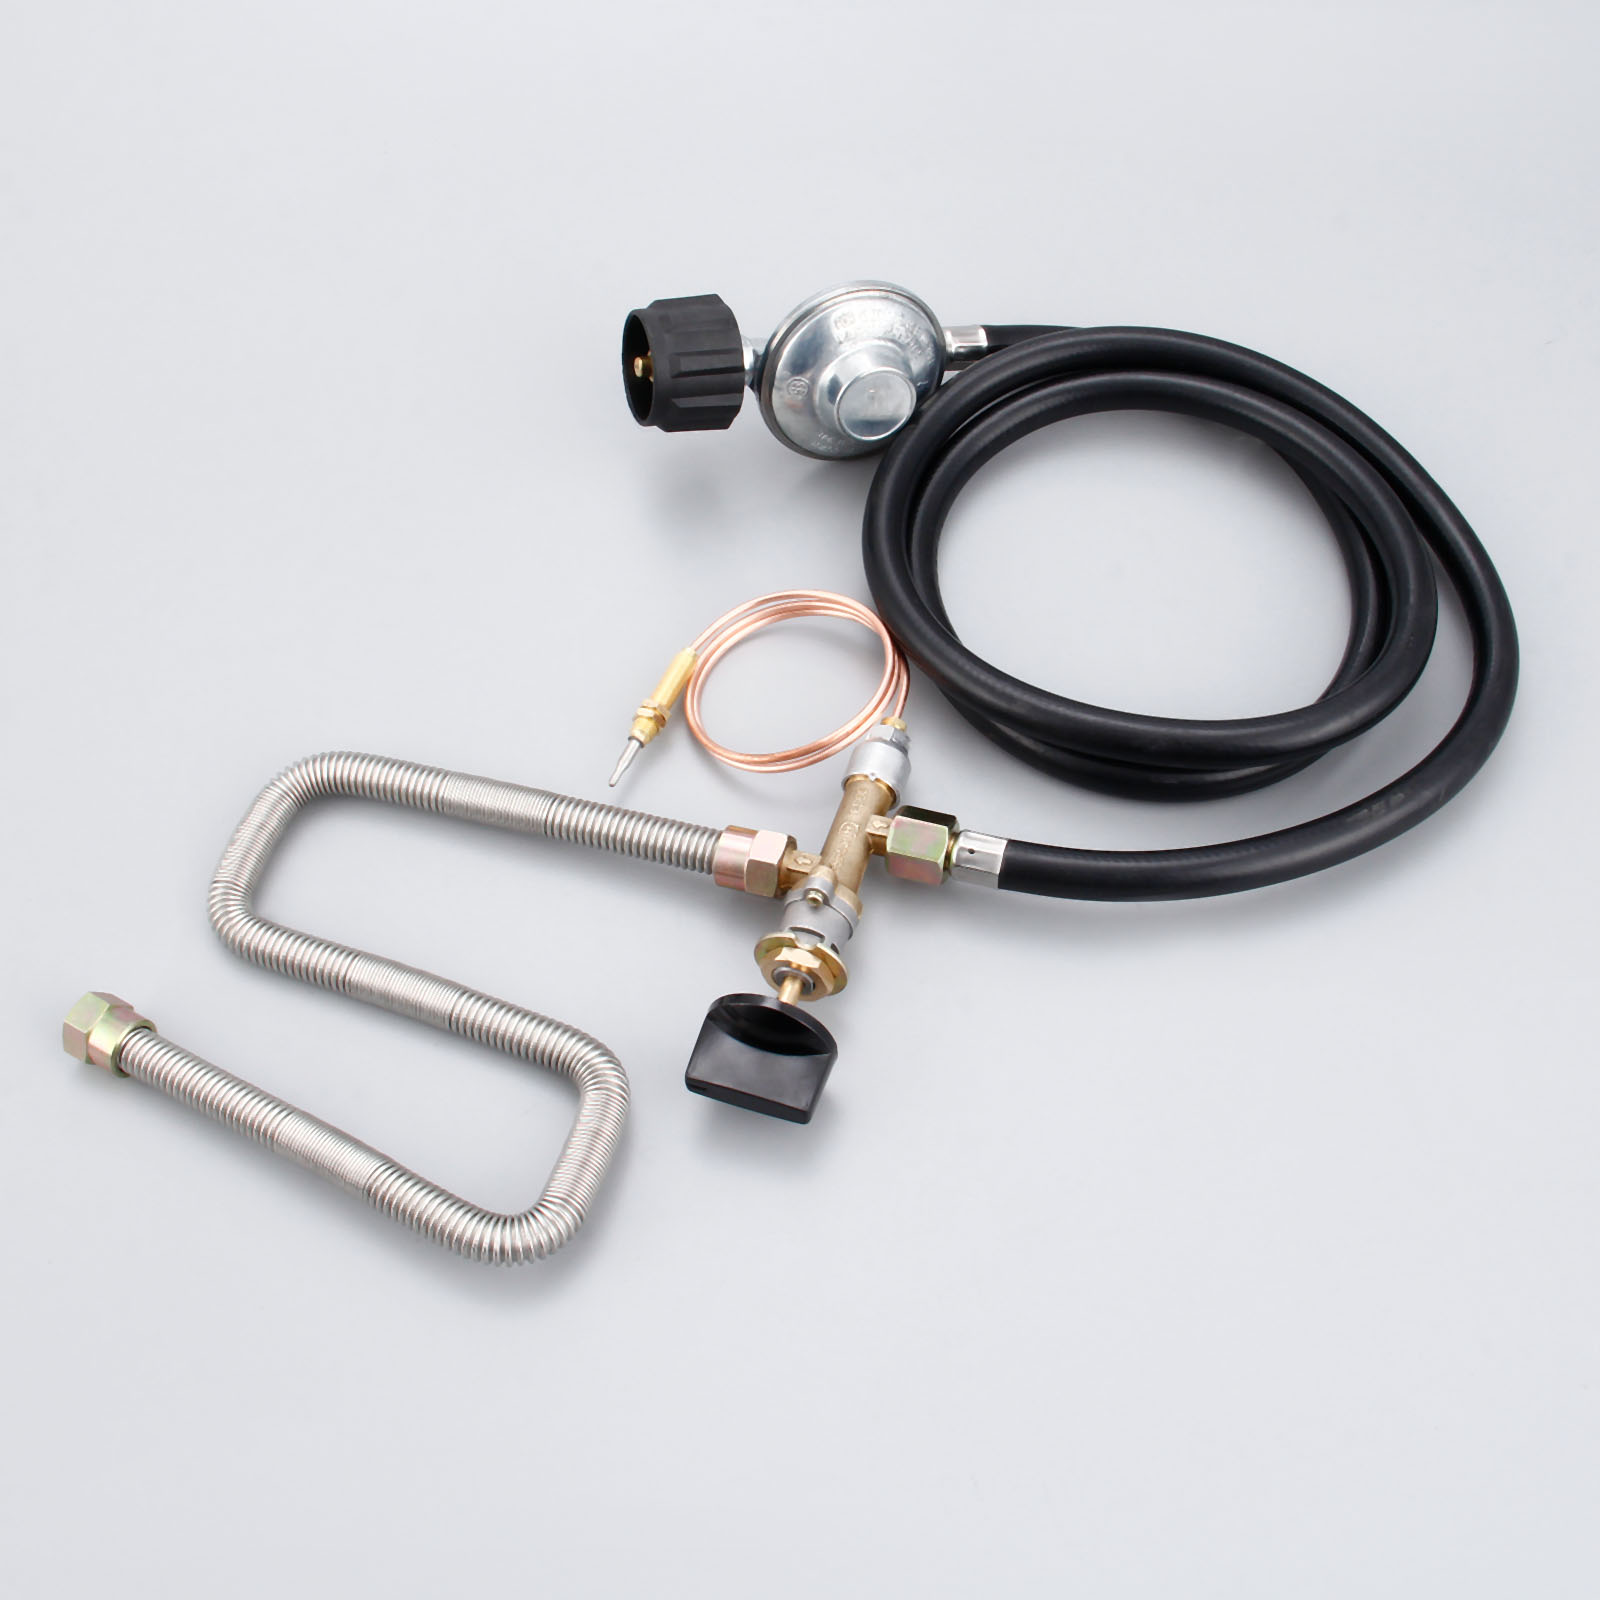 Propane Fire Pit Fireplace Parts Gas Control Valve System Regulator Valve With Hose 600mm Universal M8 Thermocouple